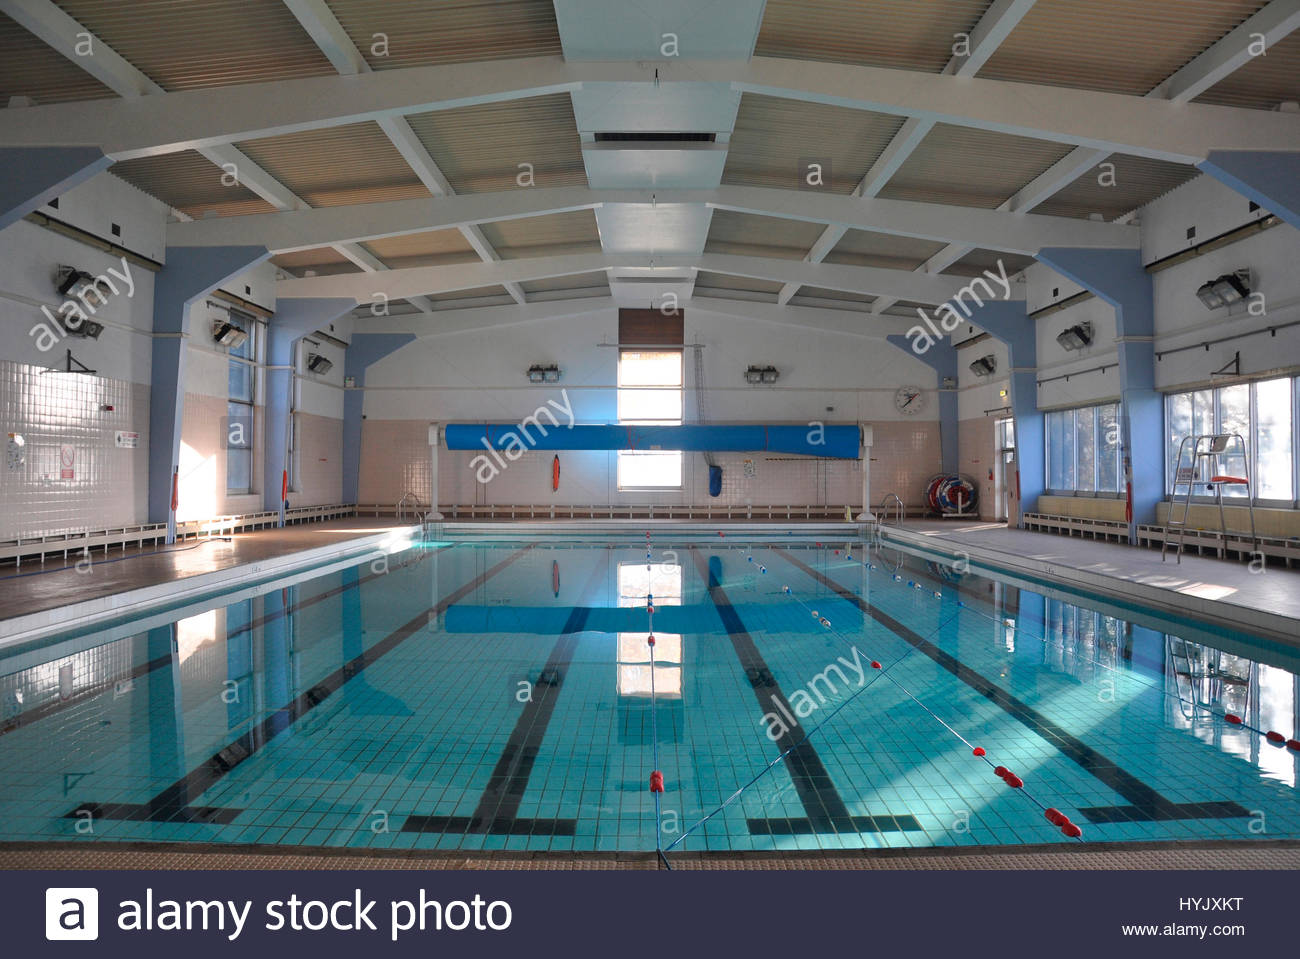 Leisure centre interior pool stock photos leisure centre interior pool stock images alamy for Wyndley leisure centre swimming pool